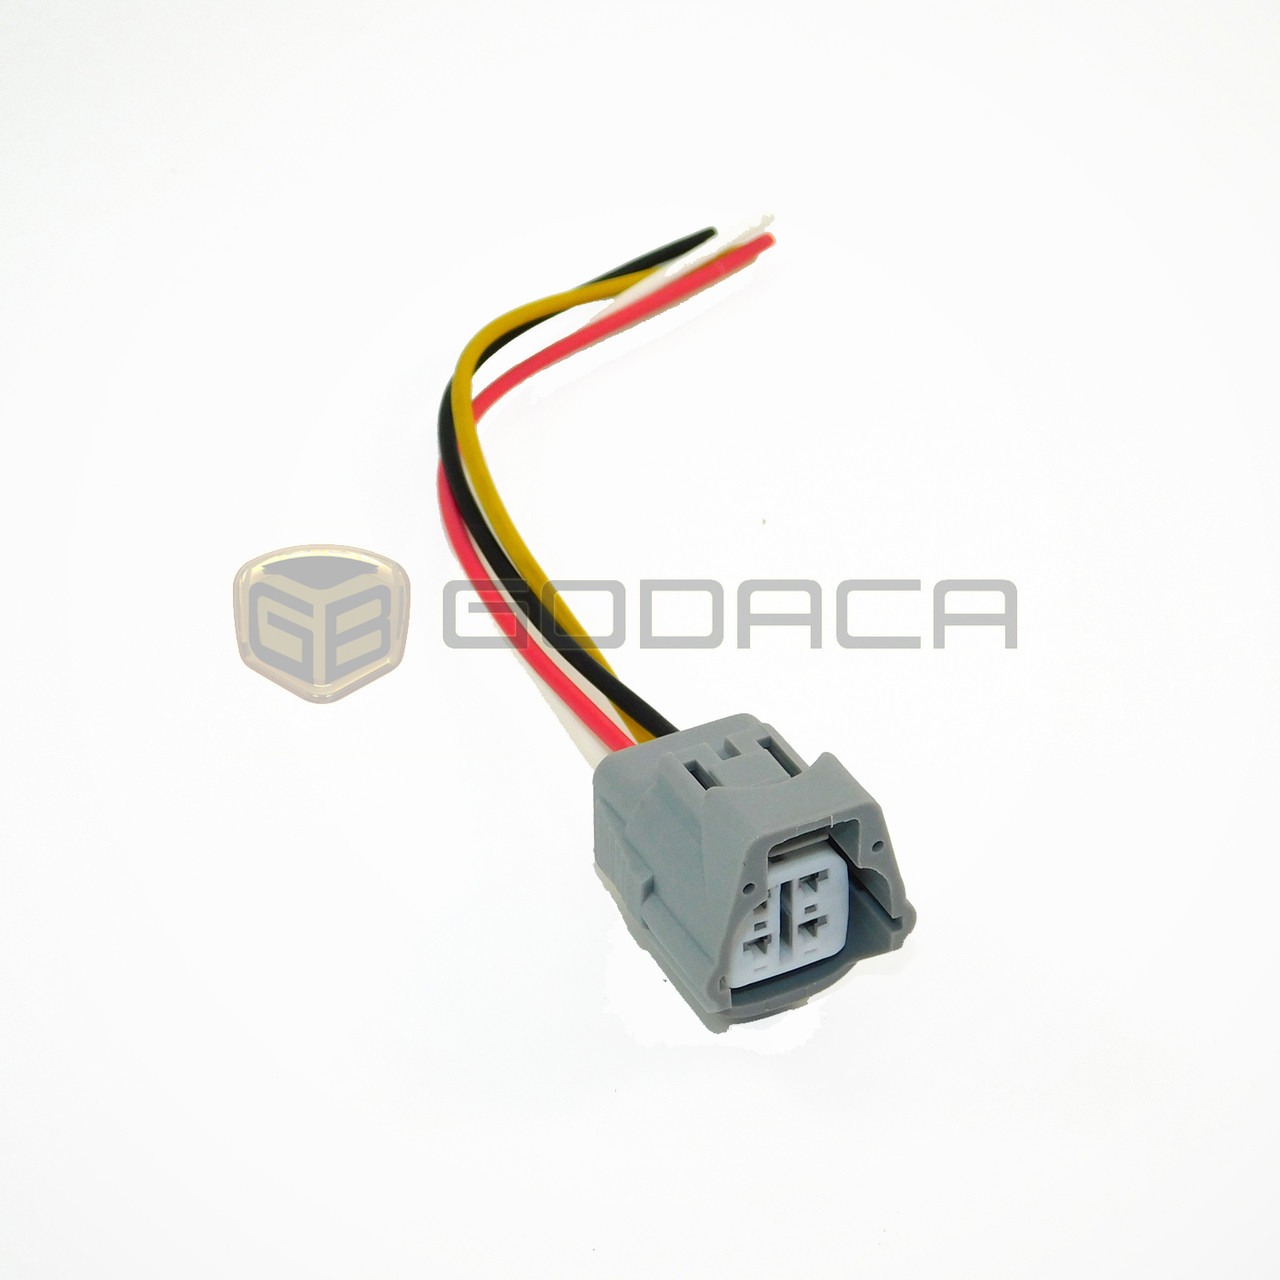 1 x connector 4 way toyota 2jz a c 4p connector pigtail wiring rh godaca com wiring connectors and pigtails for auto Engine Wiring Pigtails